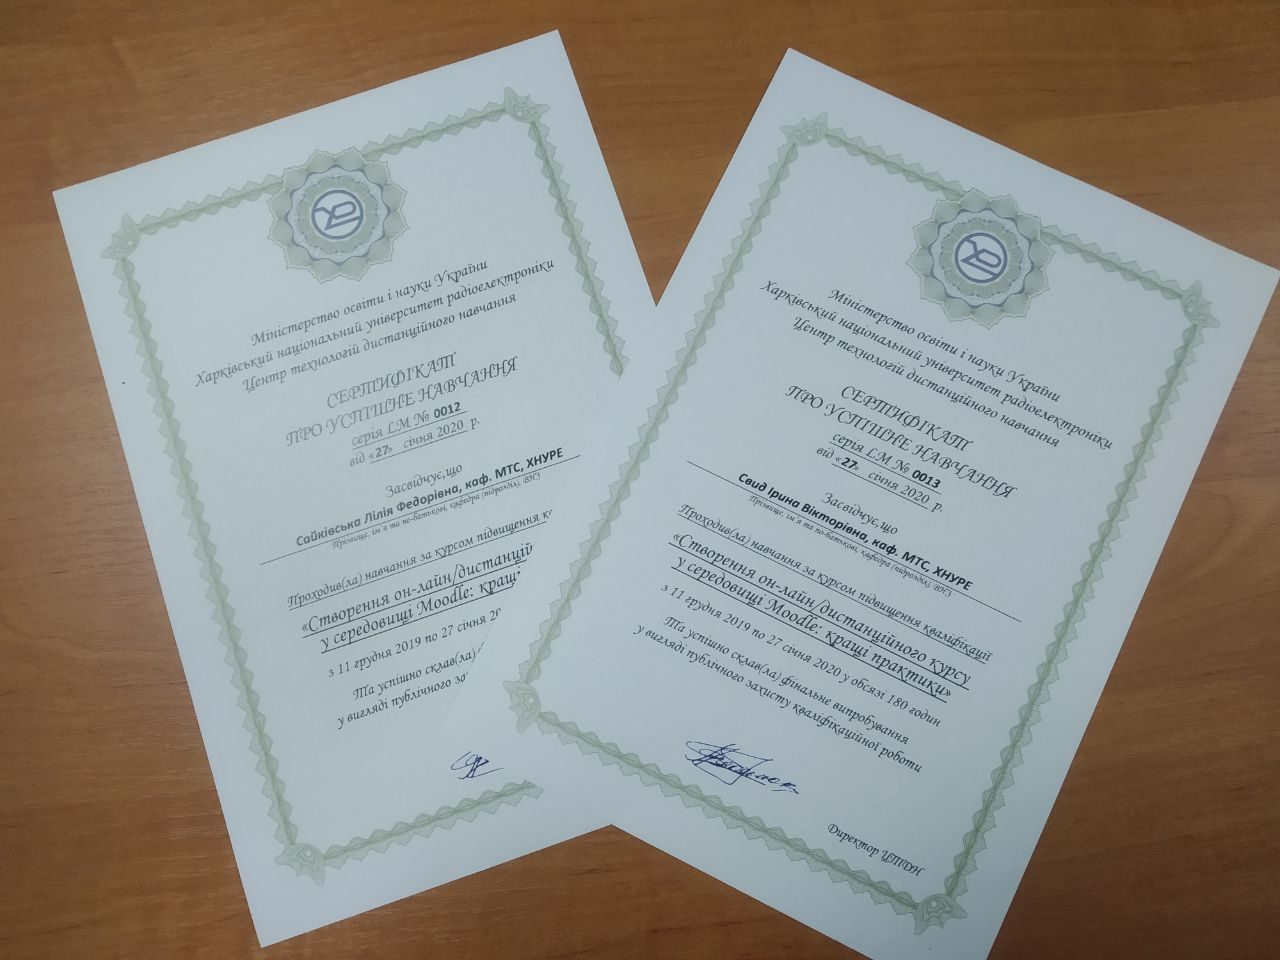 Teachers of the MTS Department improved their qualifications